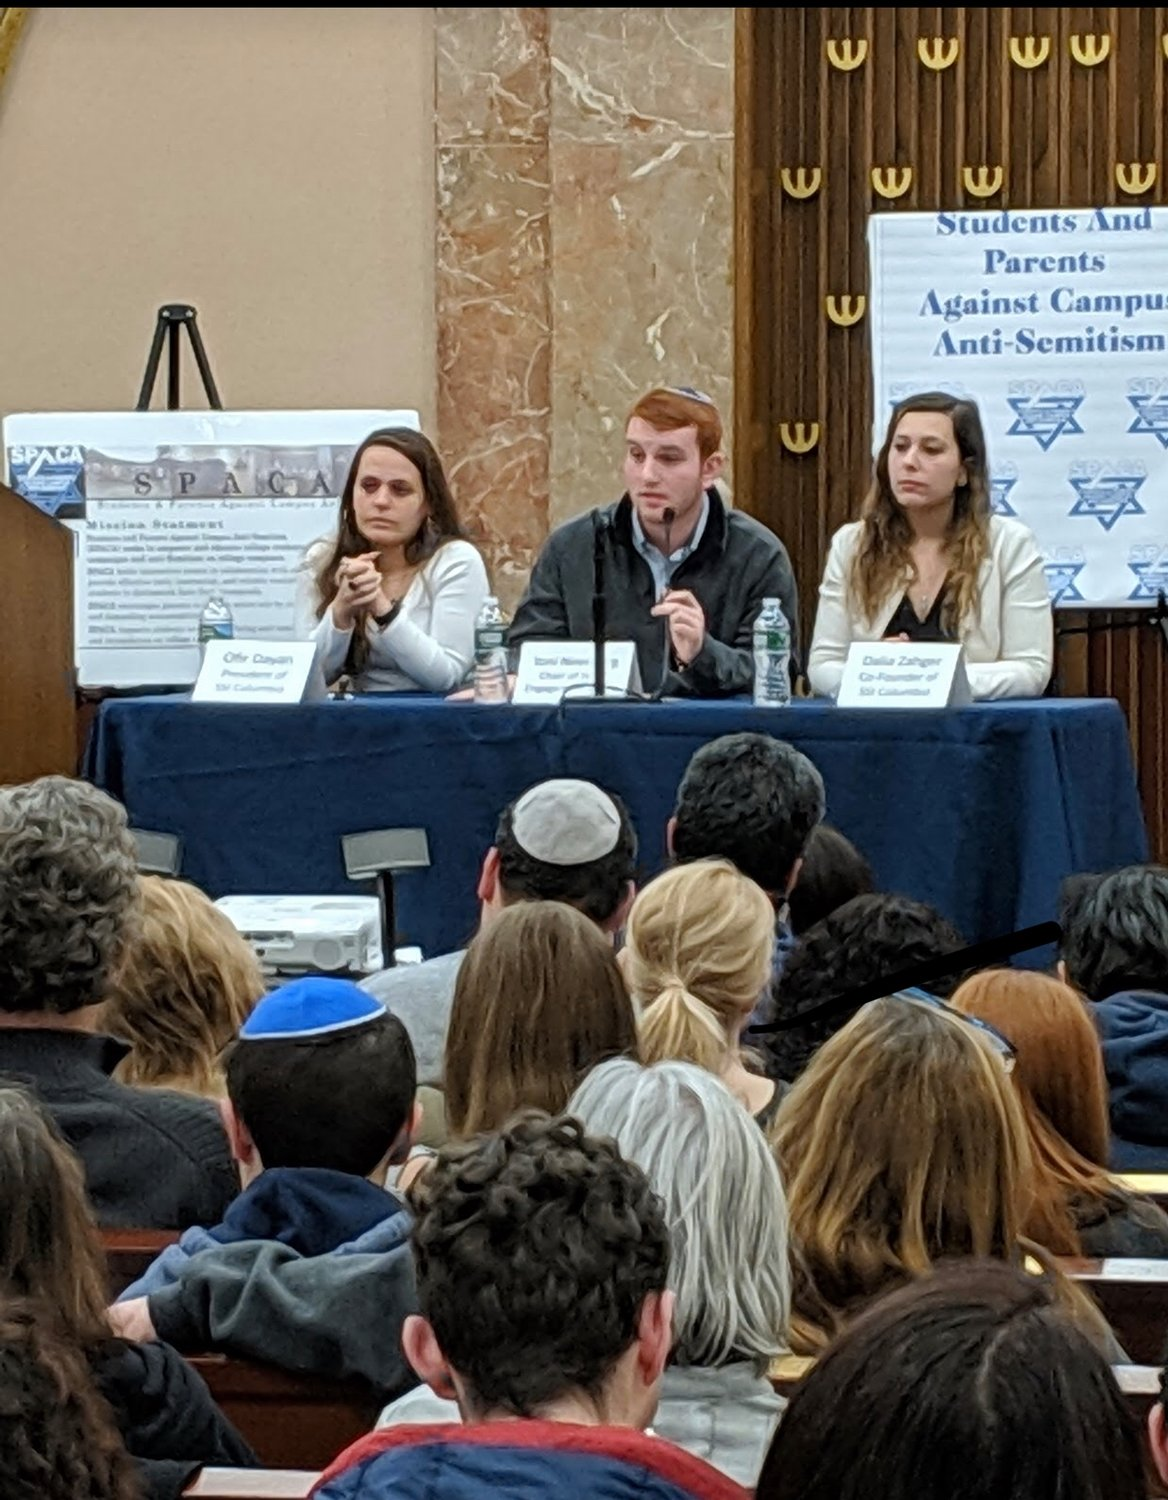 Pro-Israel students addressed a packed congregation at the Merrick Jewish Centre about anti-Semitic bias they see on campus.